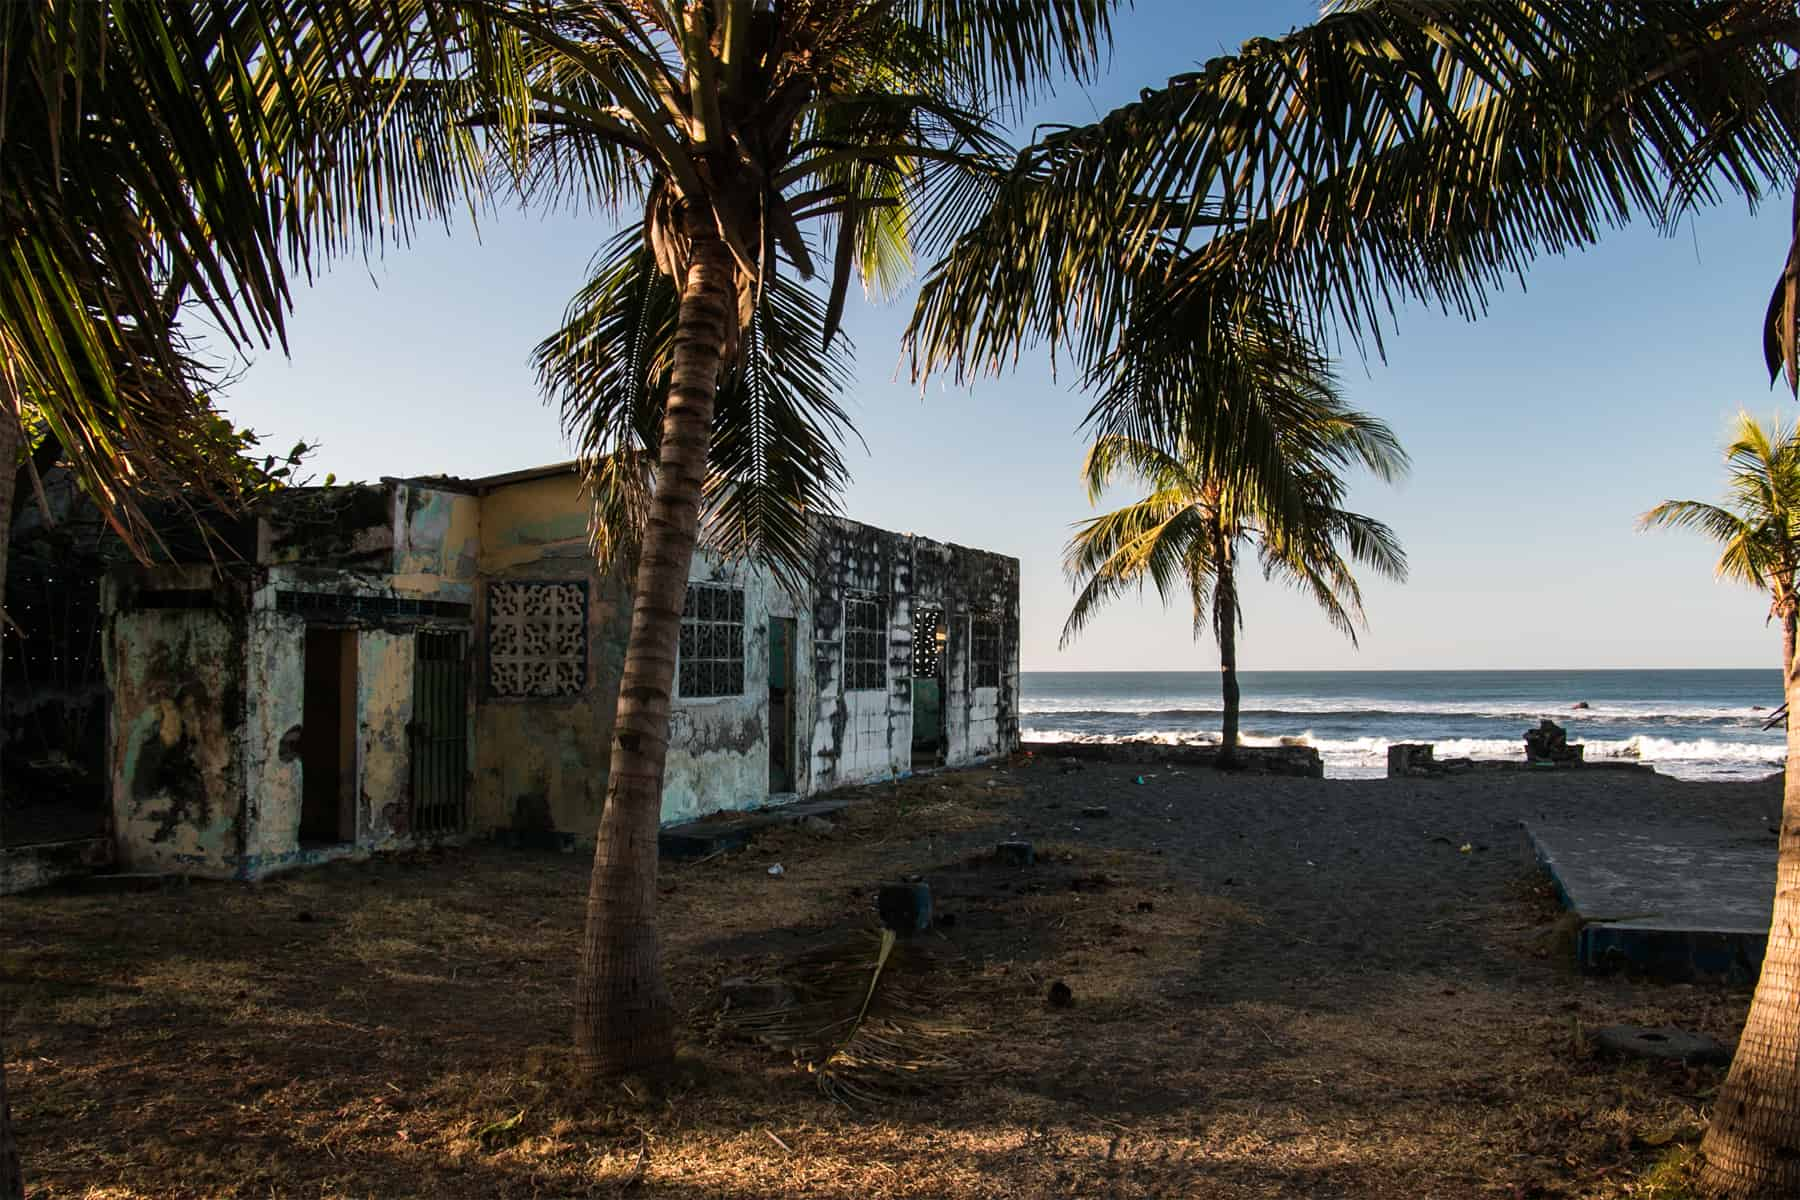 Palm trees beside an old crumbling building on the beach